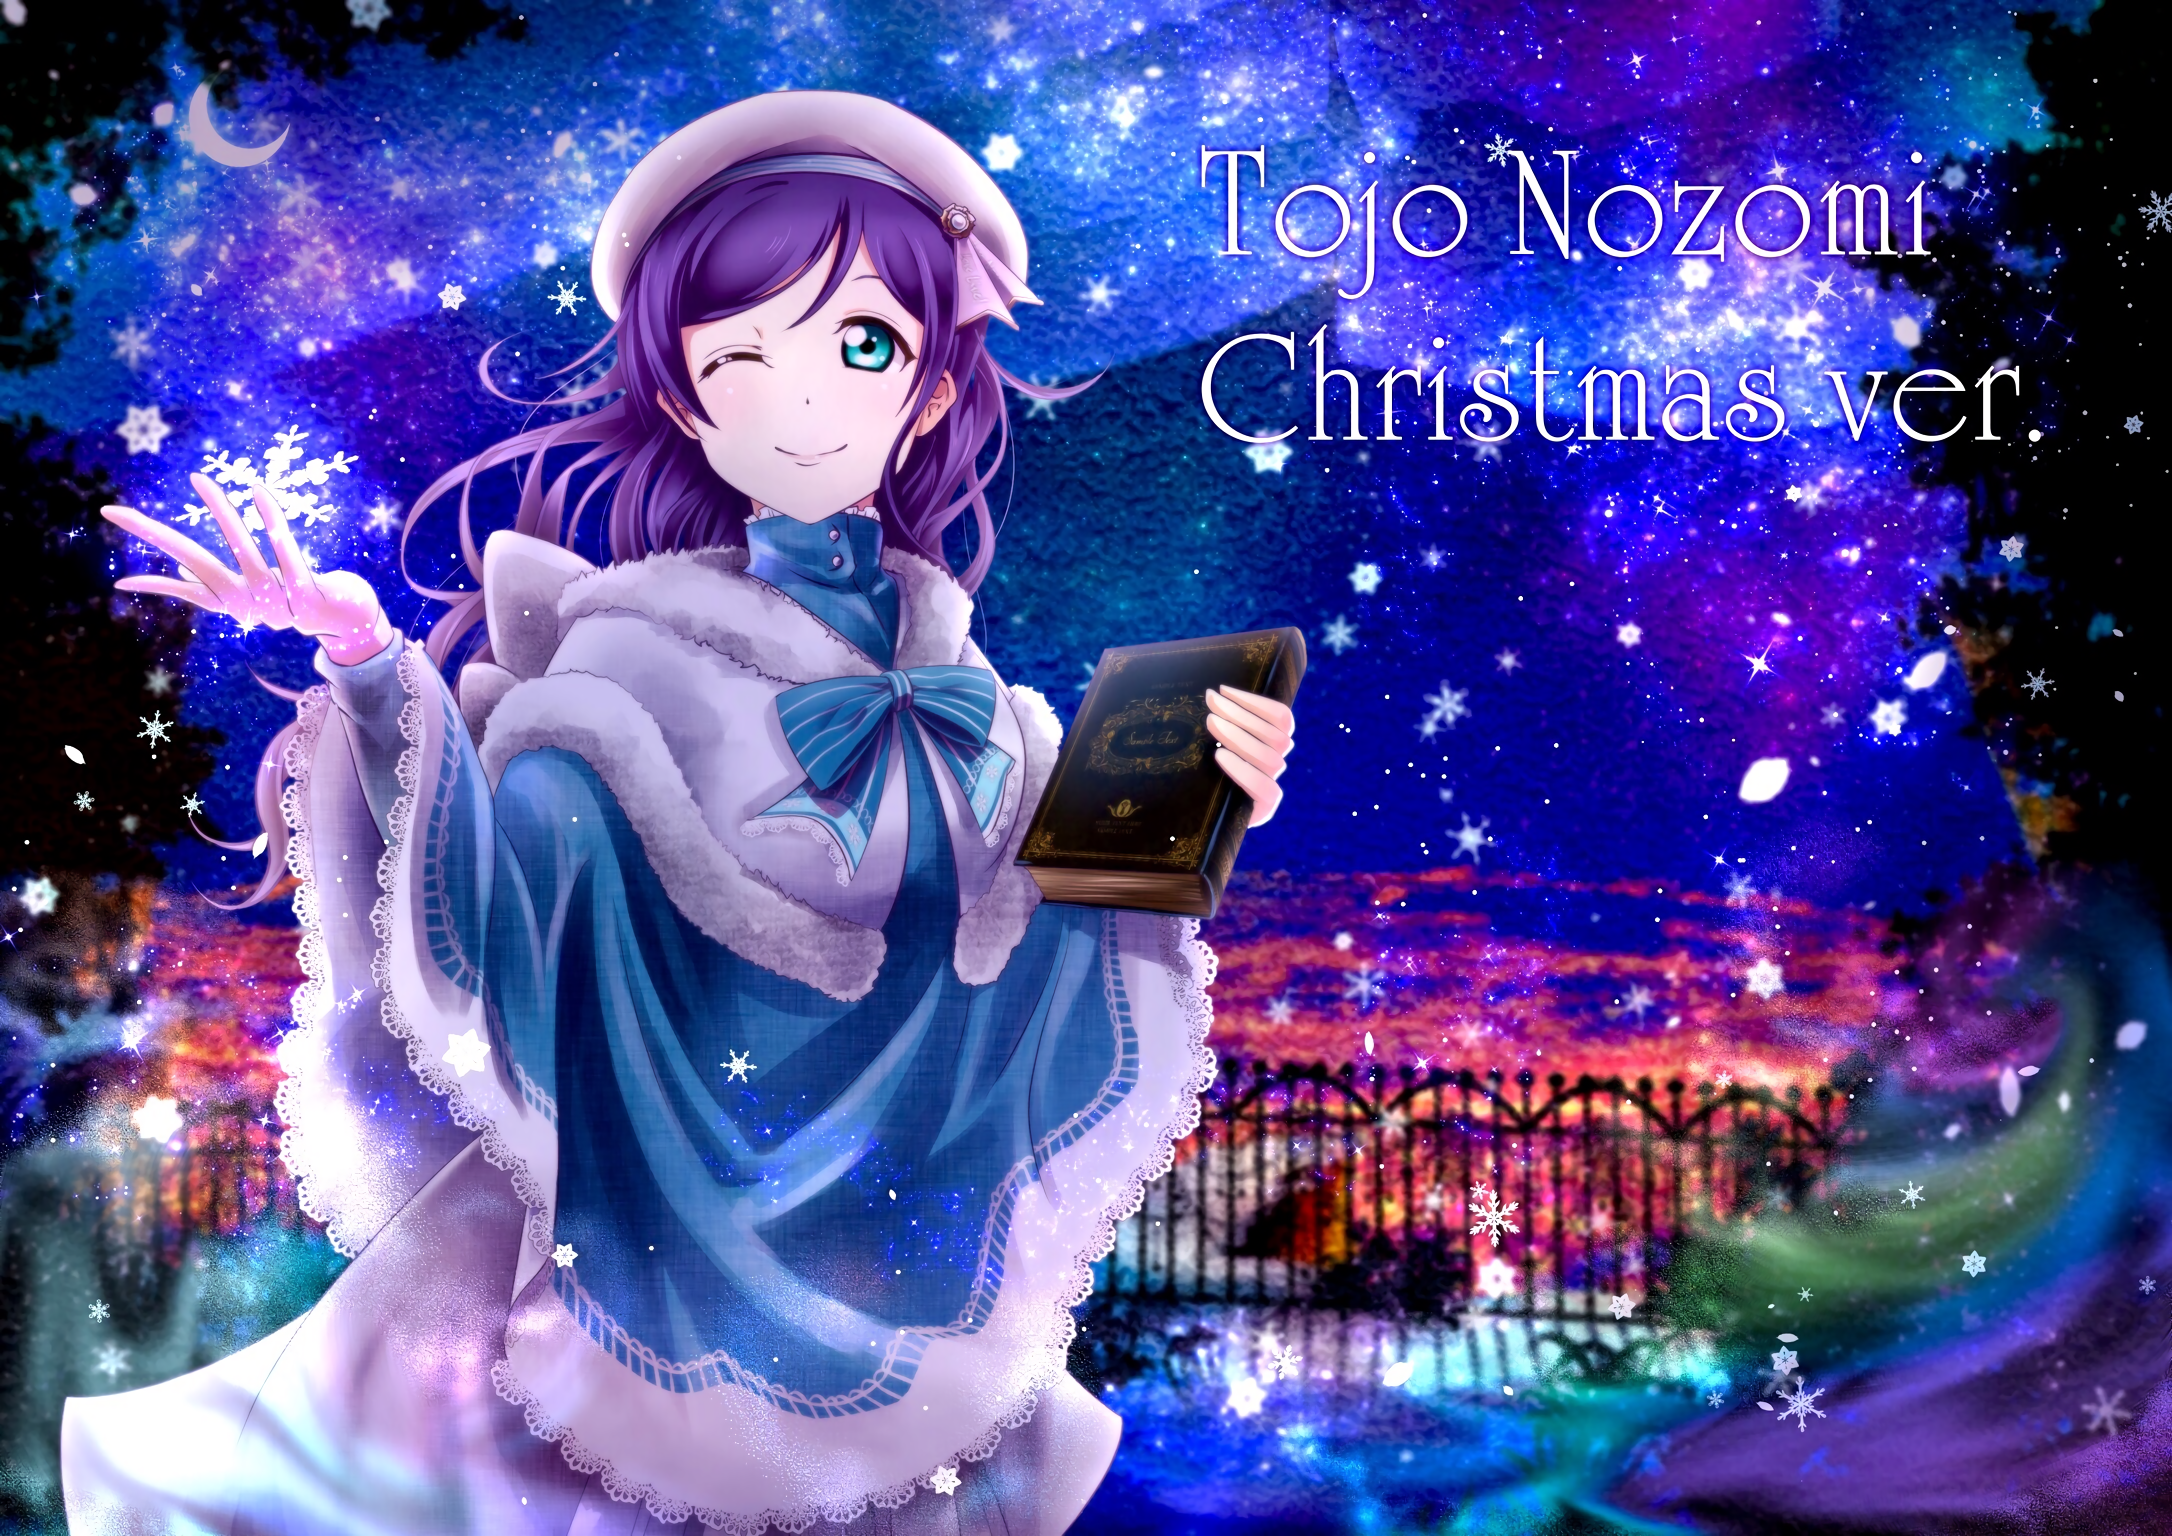 free neon bears in love live wallpapers apk download for android